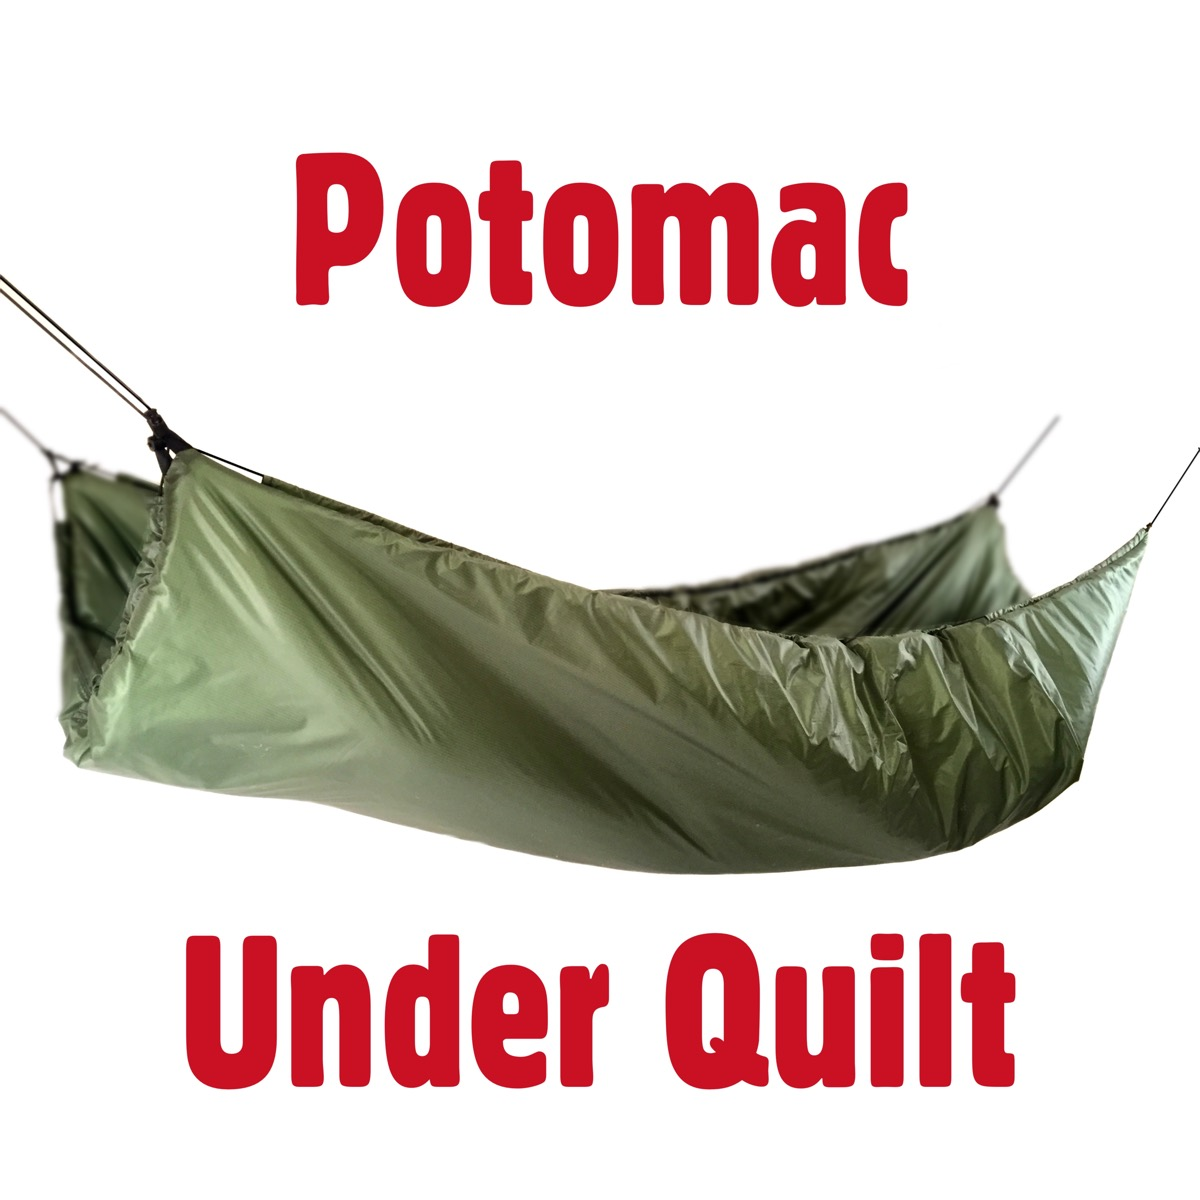 Medium image of potomac underquilt